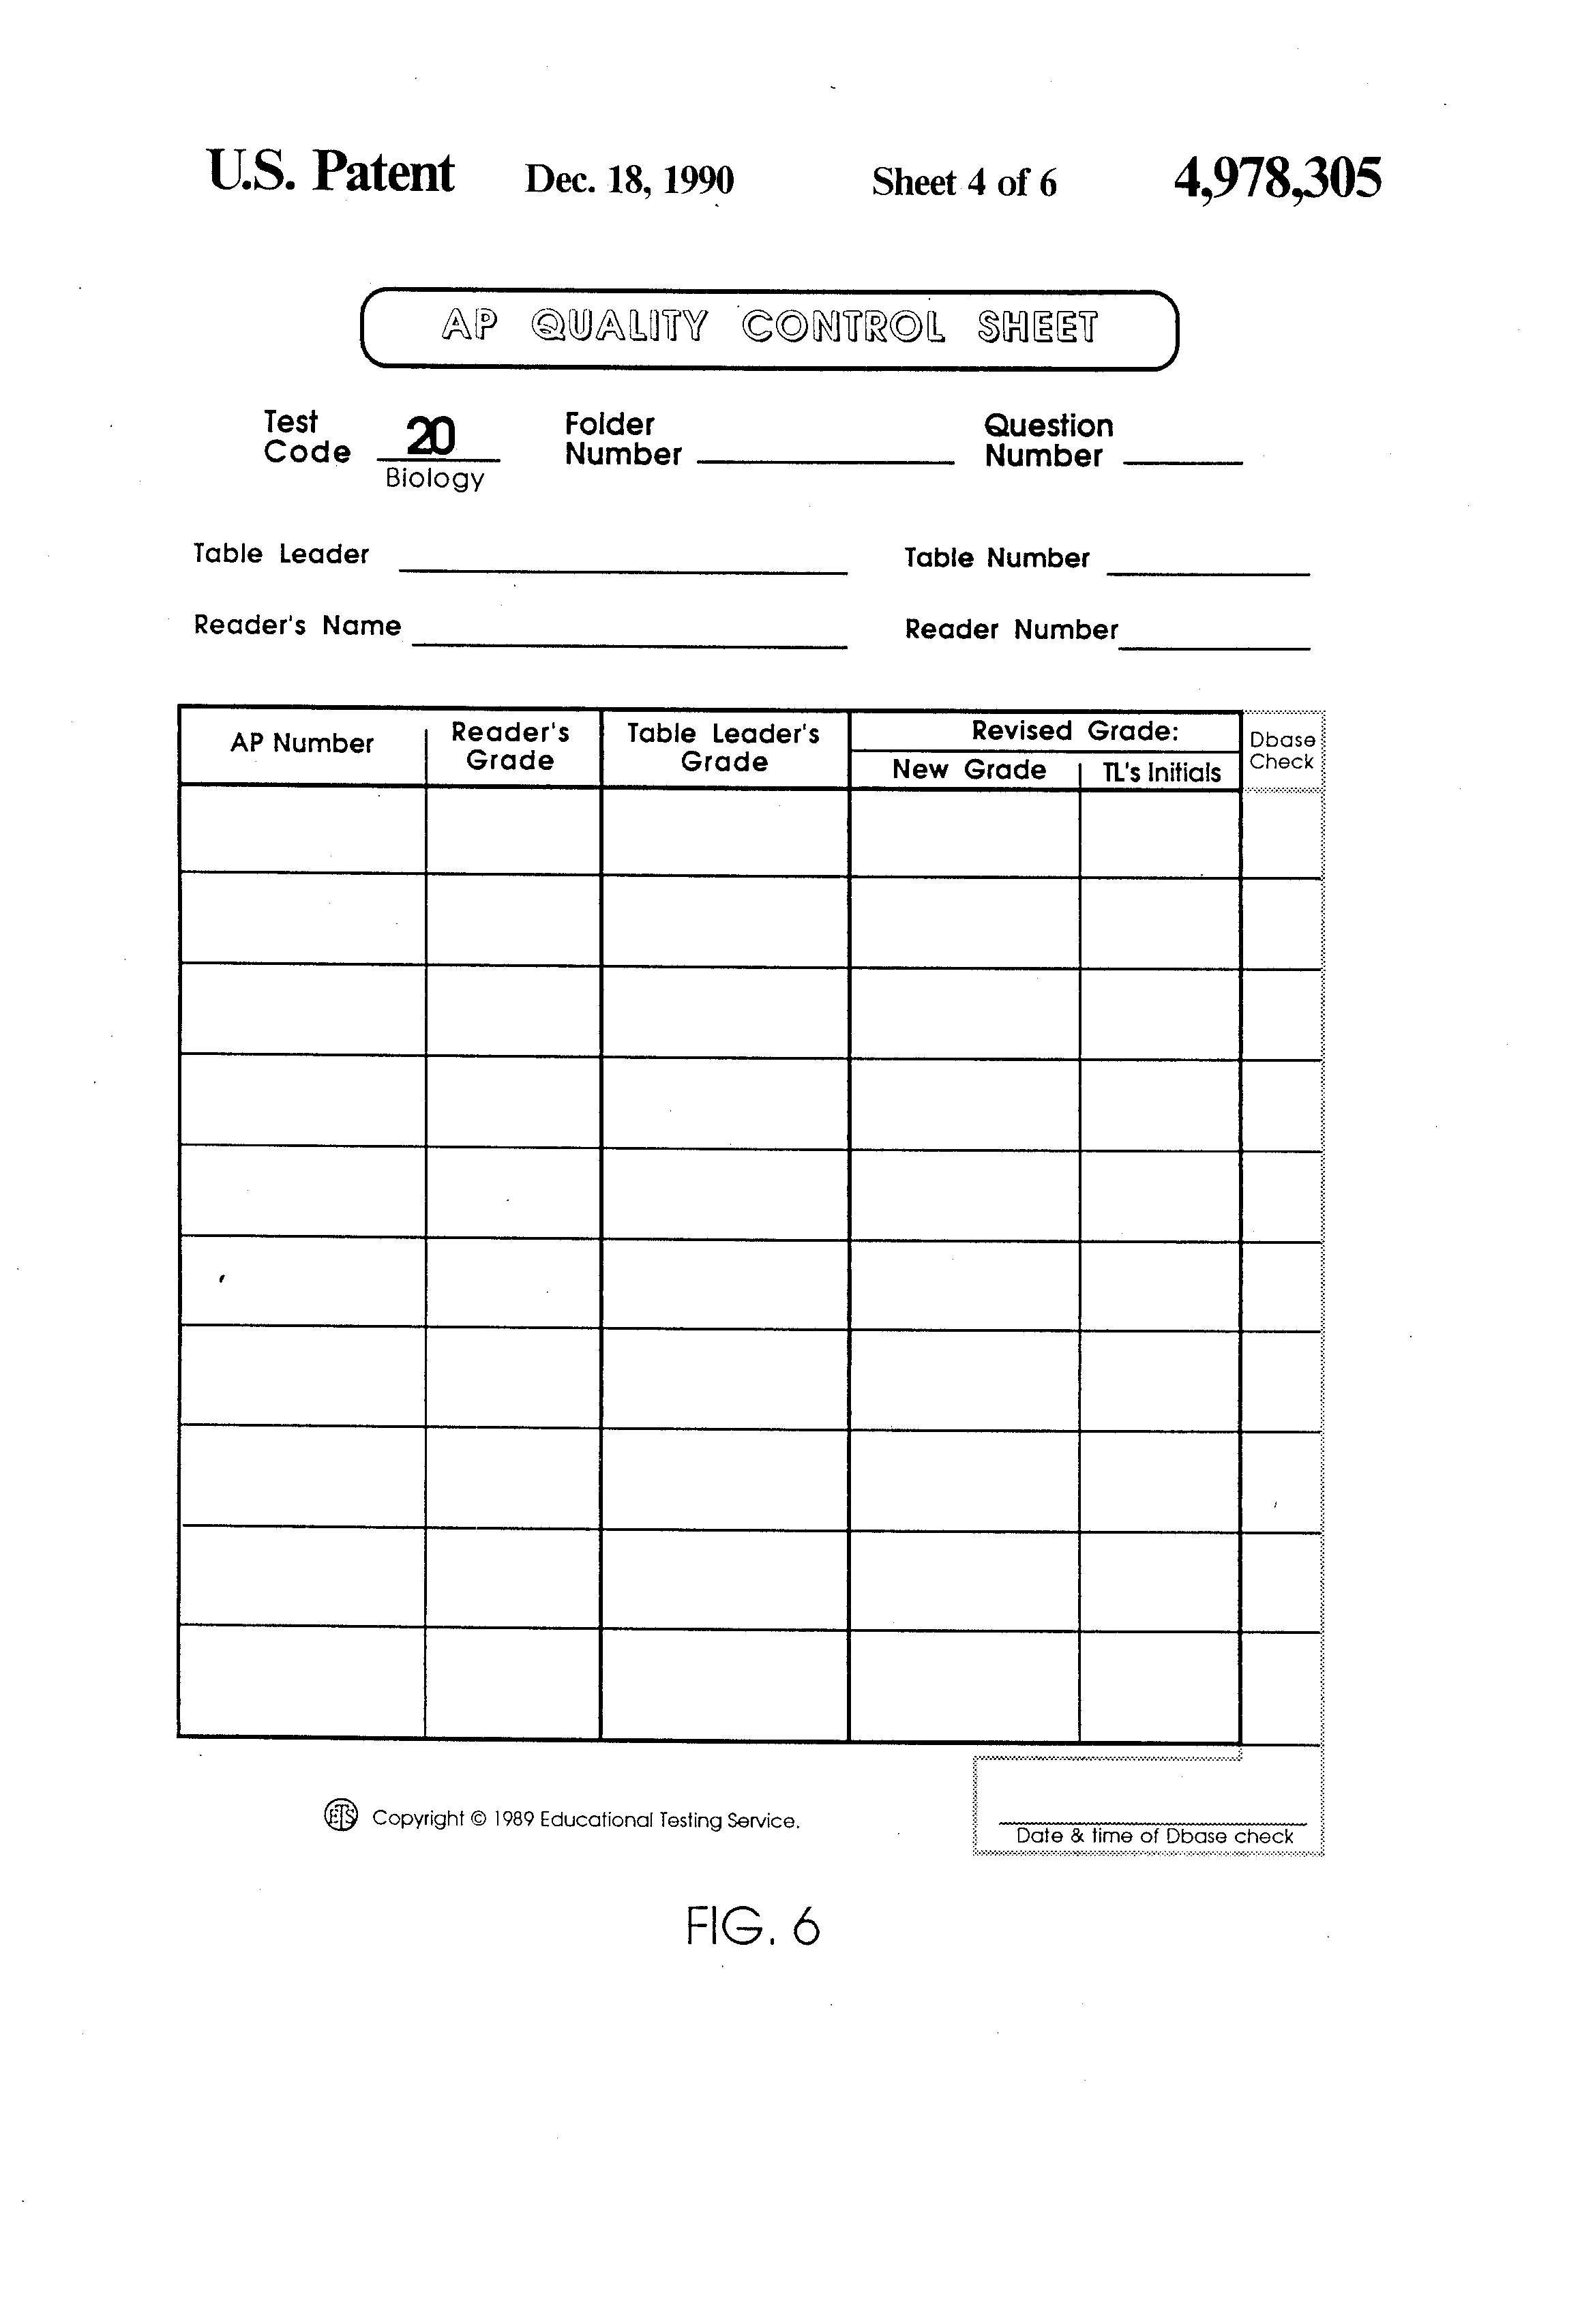 Document Transmittal Template Free 12 Patent Application – Document Transmittal Template Free